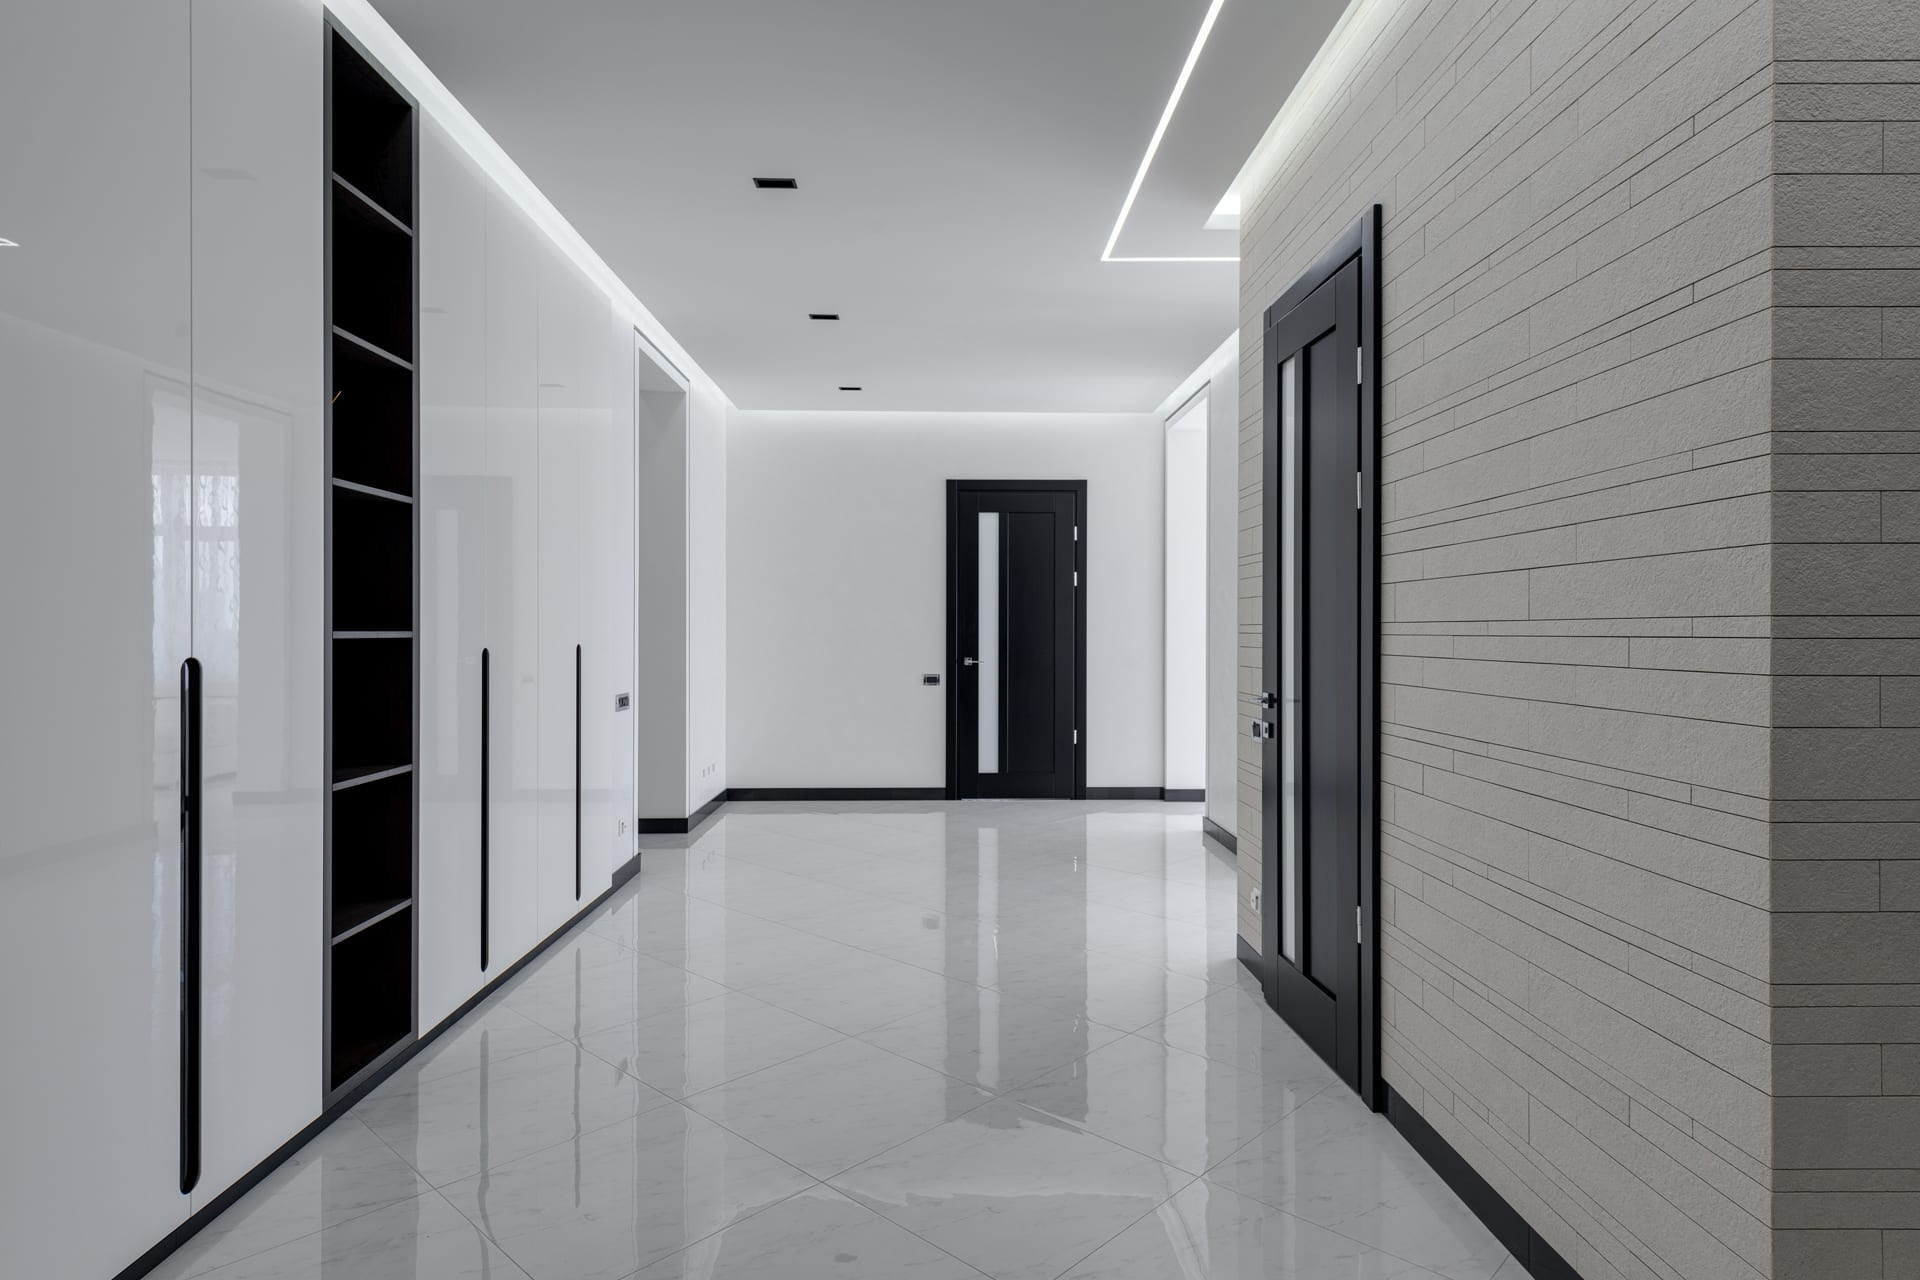 nationwide lighting services - Victory Lights - LED L Light Fixtures in Office Lighting, Church Lighting, Warehouse Lighting, Sports Lighting | Nashville, TN & Raleigh, NC